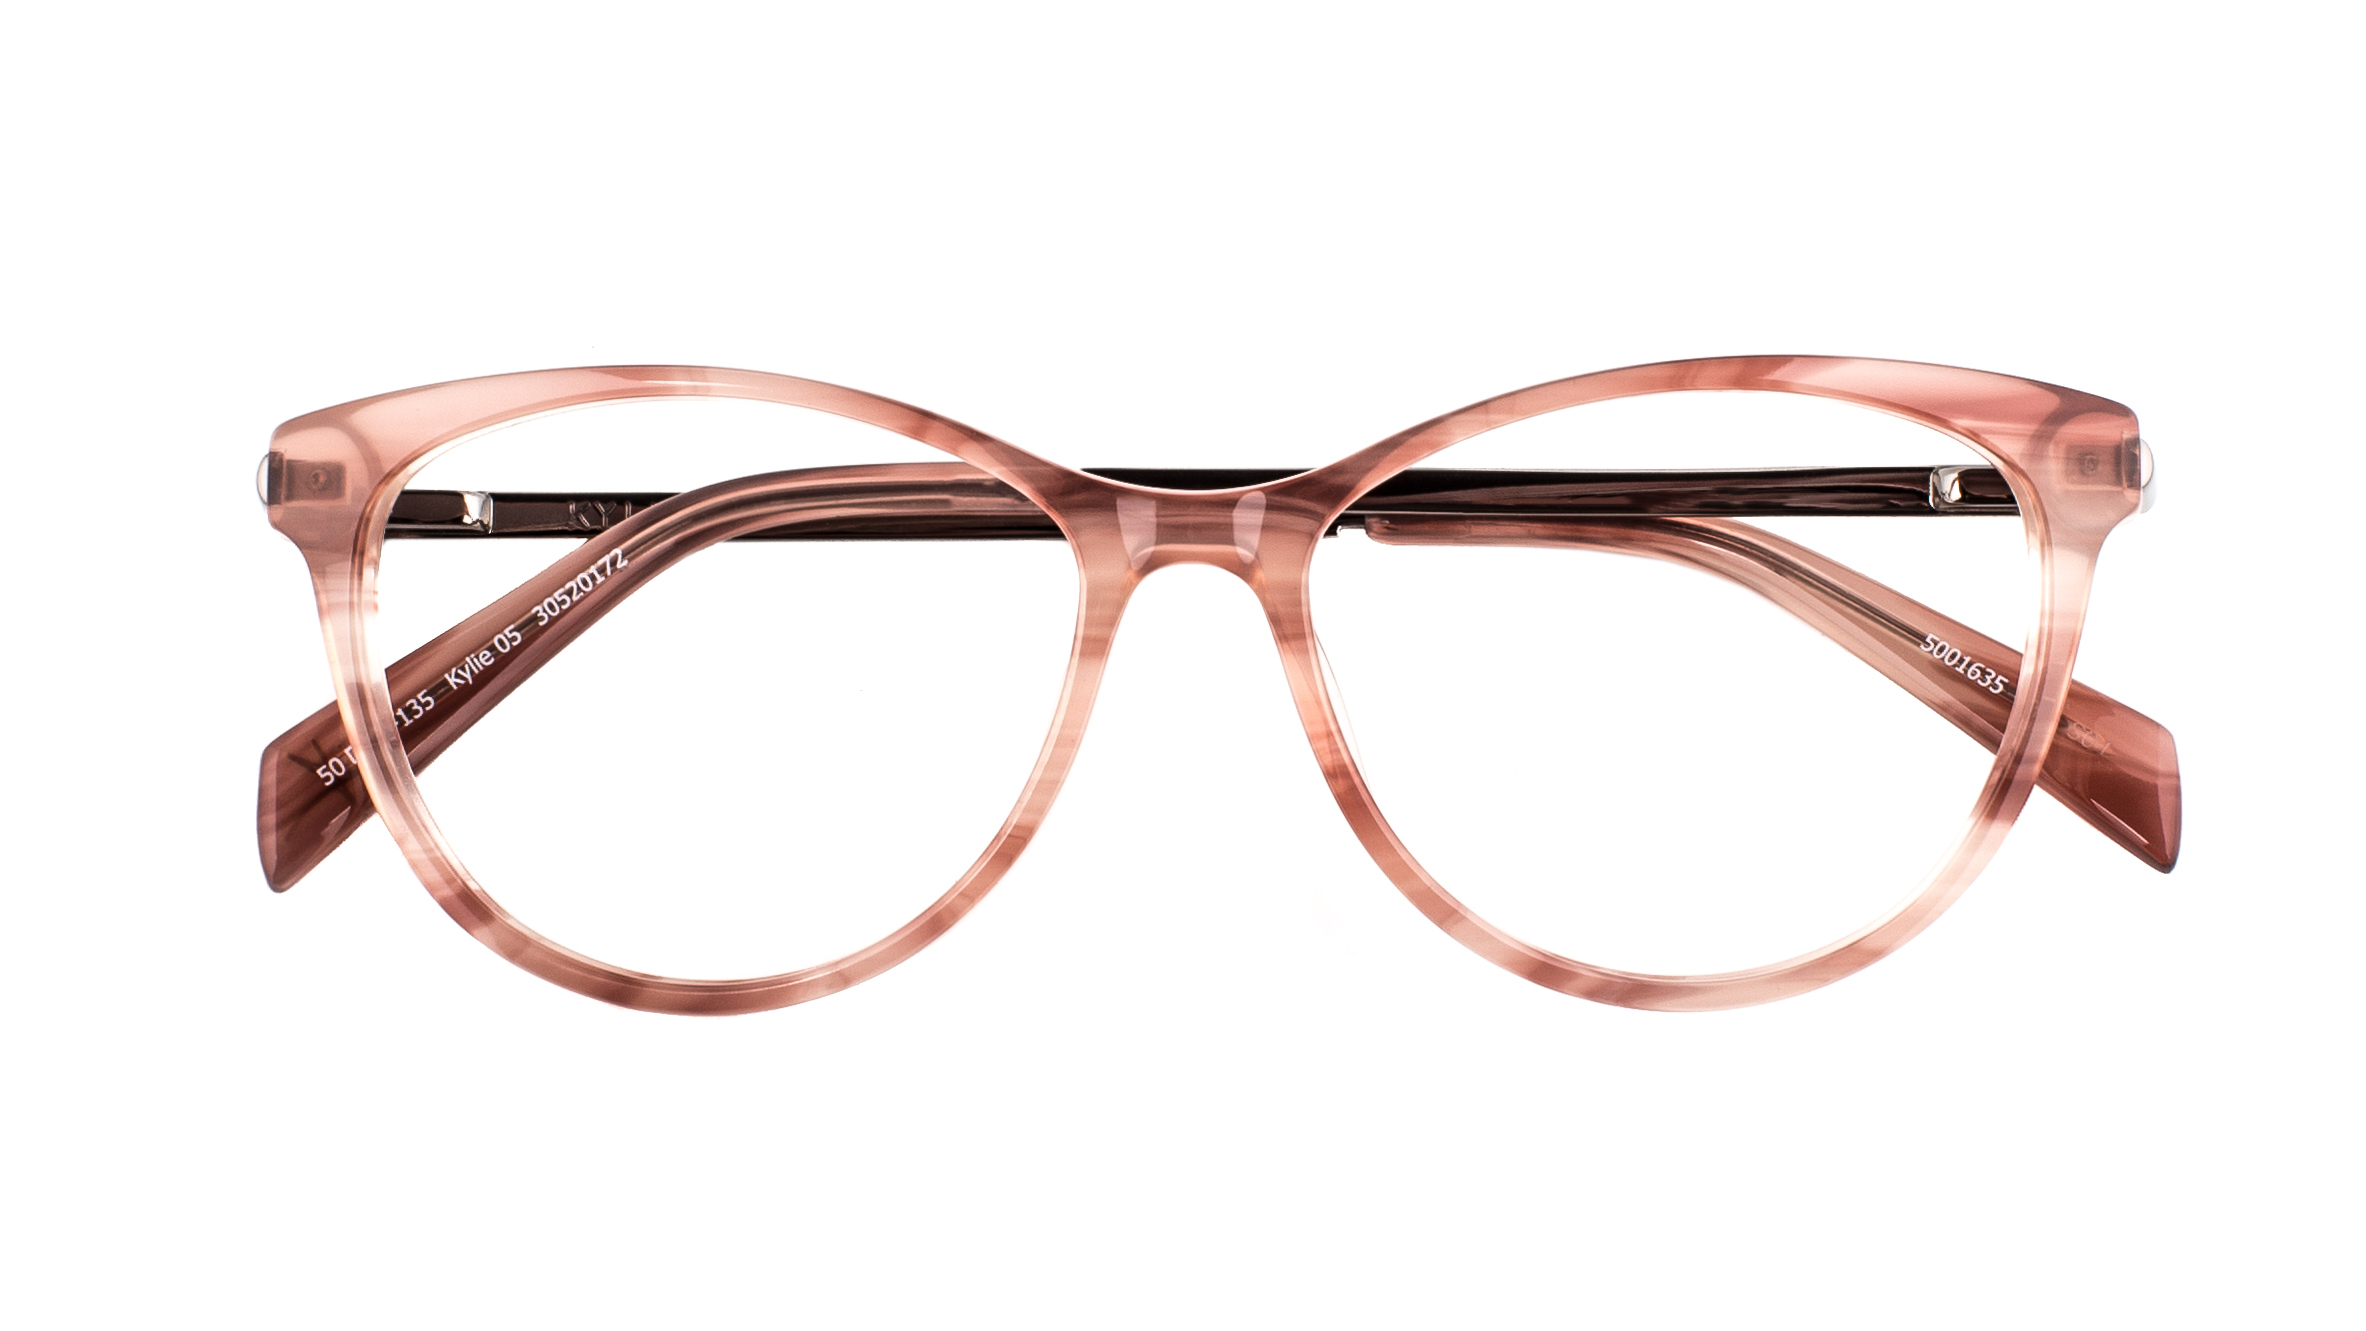 Kylie Minogue Eyewear_Kylie 05_SKU 30520172_RRP 2 pairs from $299